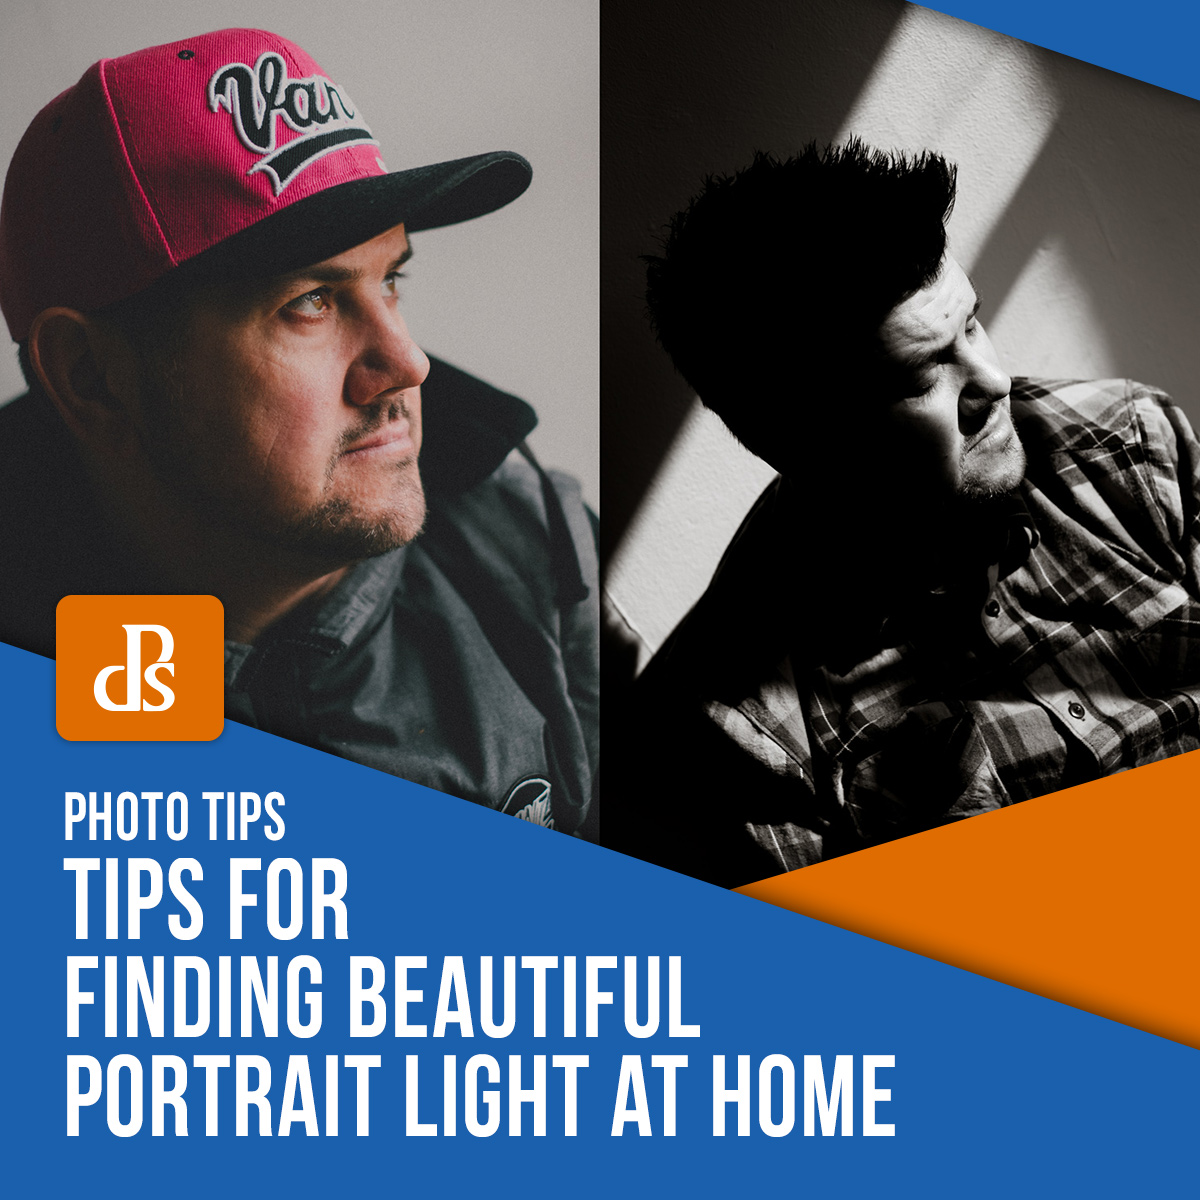 https://i2.wp.com/digital-photography-school.com/wp-content/uploads/2020/05/dps-finding-beautiful-portrait-light-at-home.jpg?ssl=1